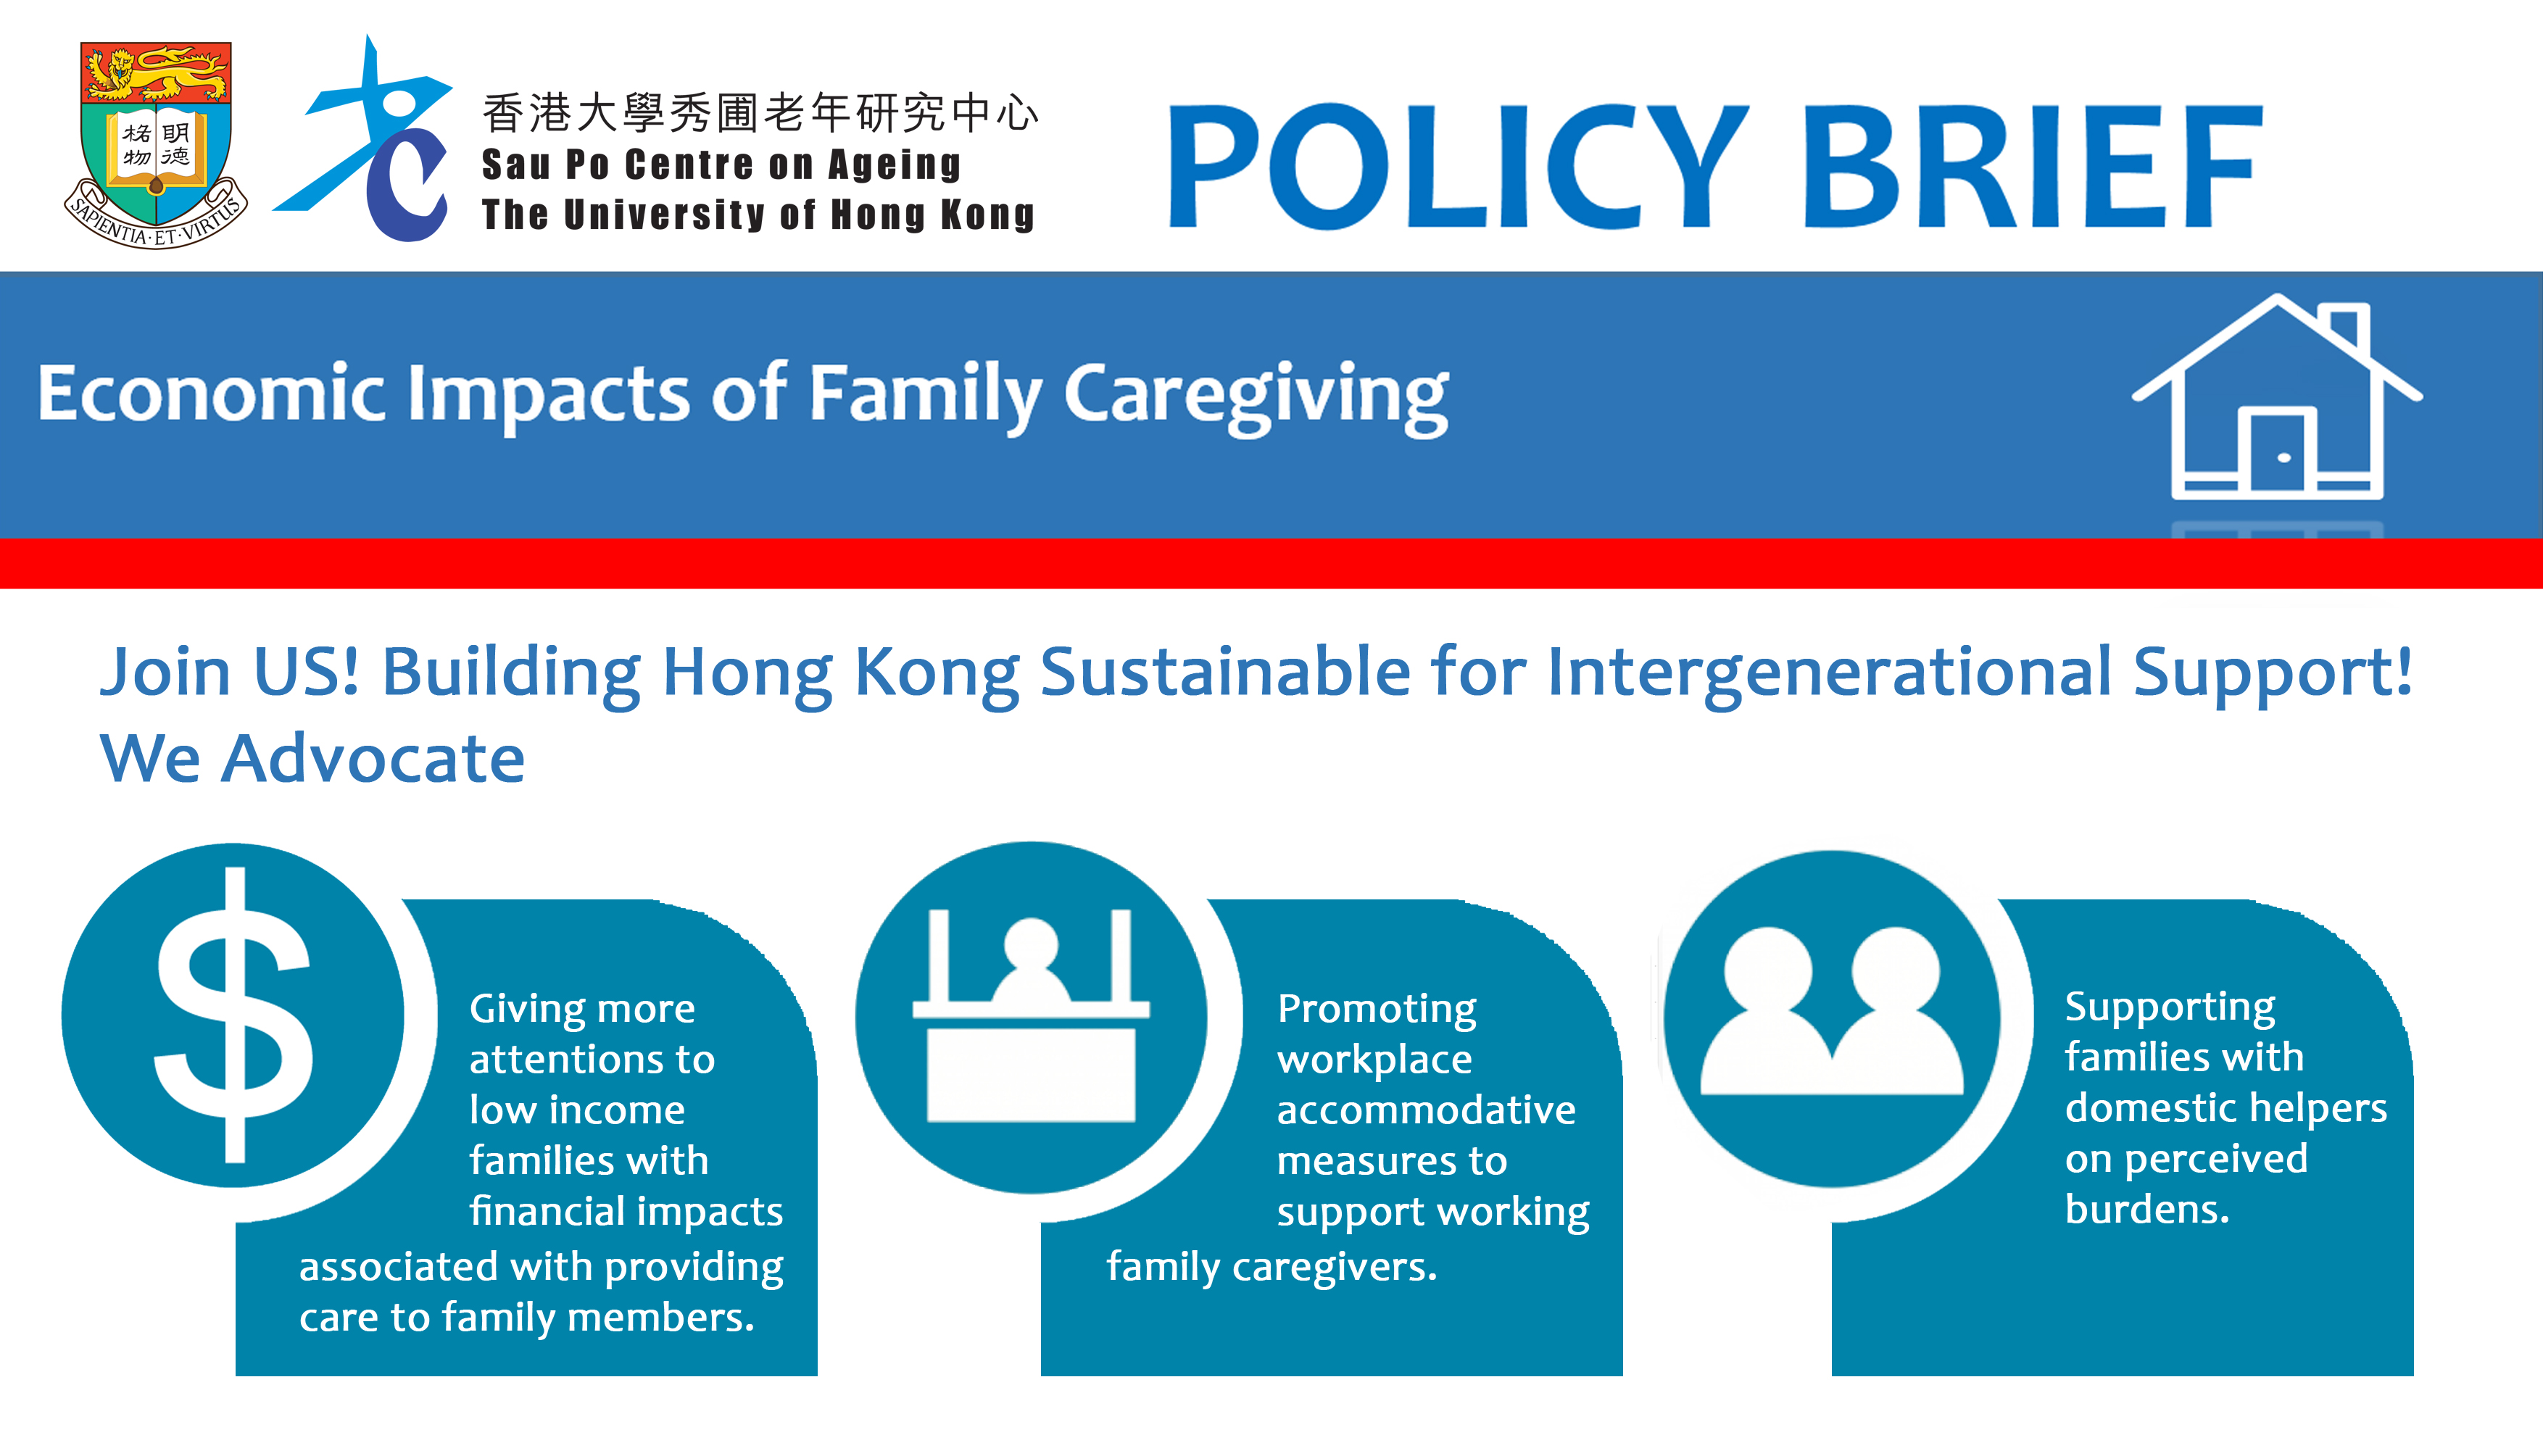 Economic Impacts of Family Caregiving